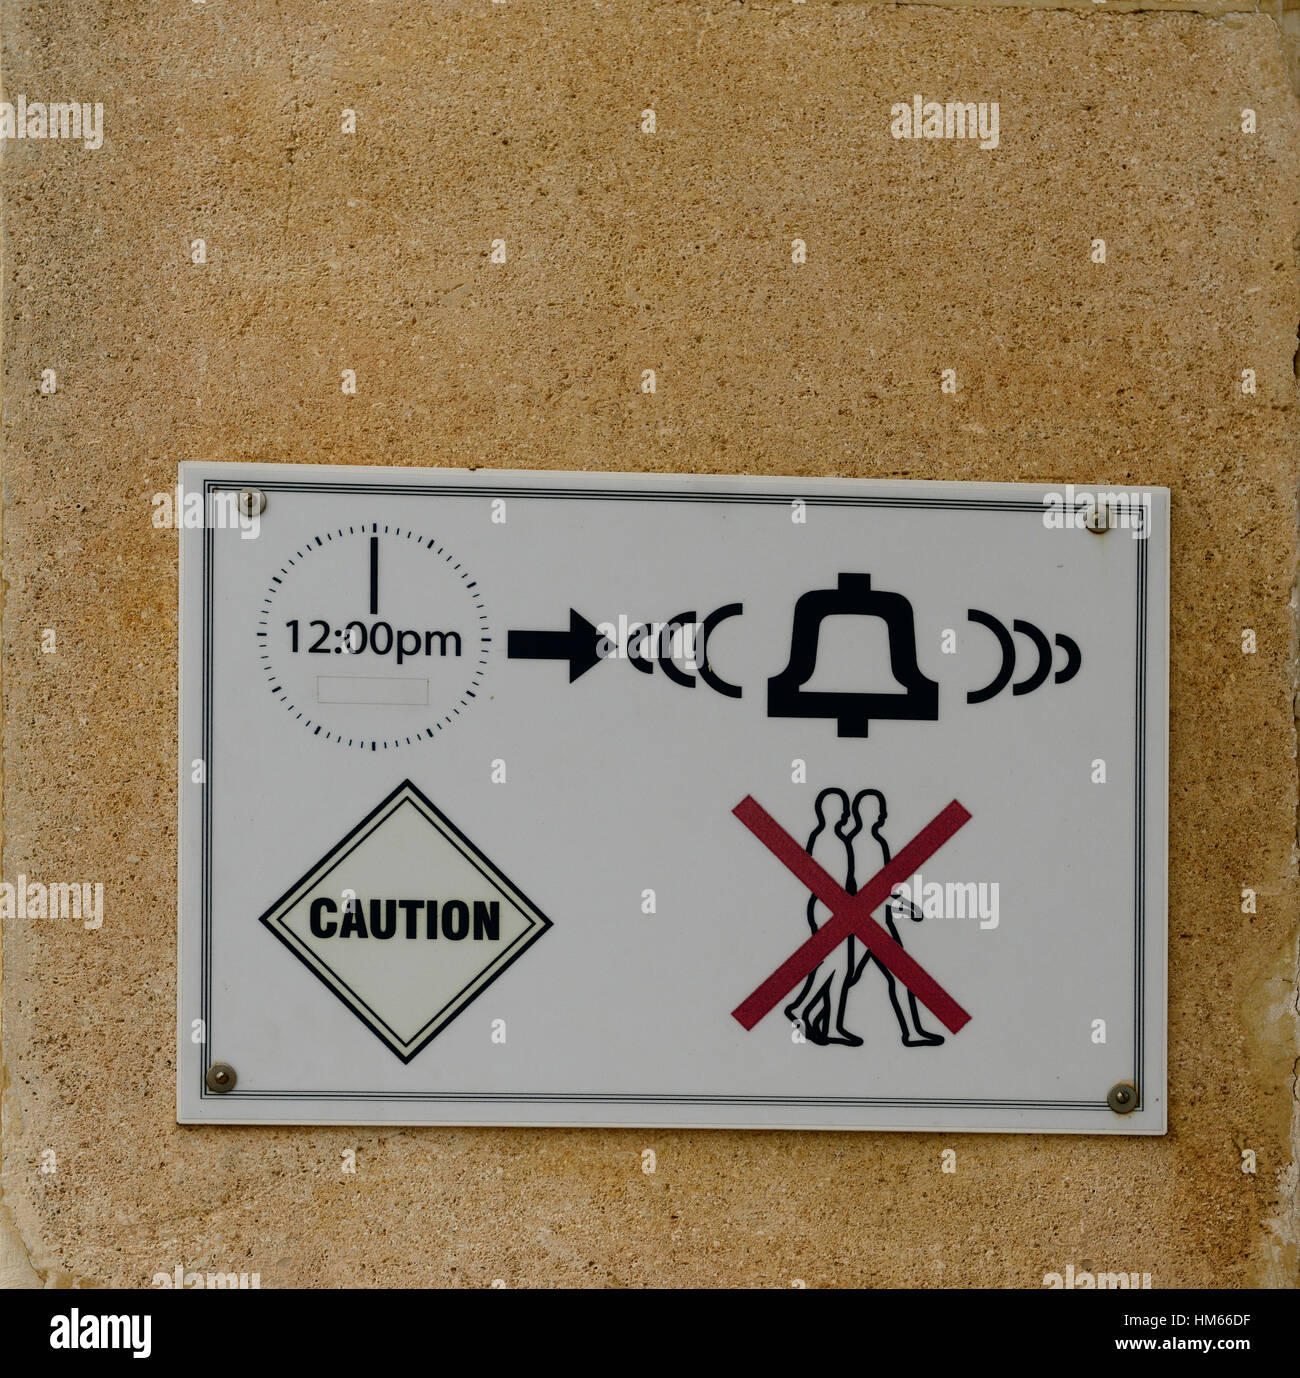 sign caution warn warning signs advance notice loud deafen deafening noise bell ring ringing midday noon alarm signal - Stock Image